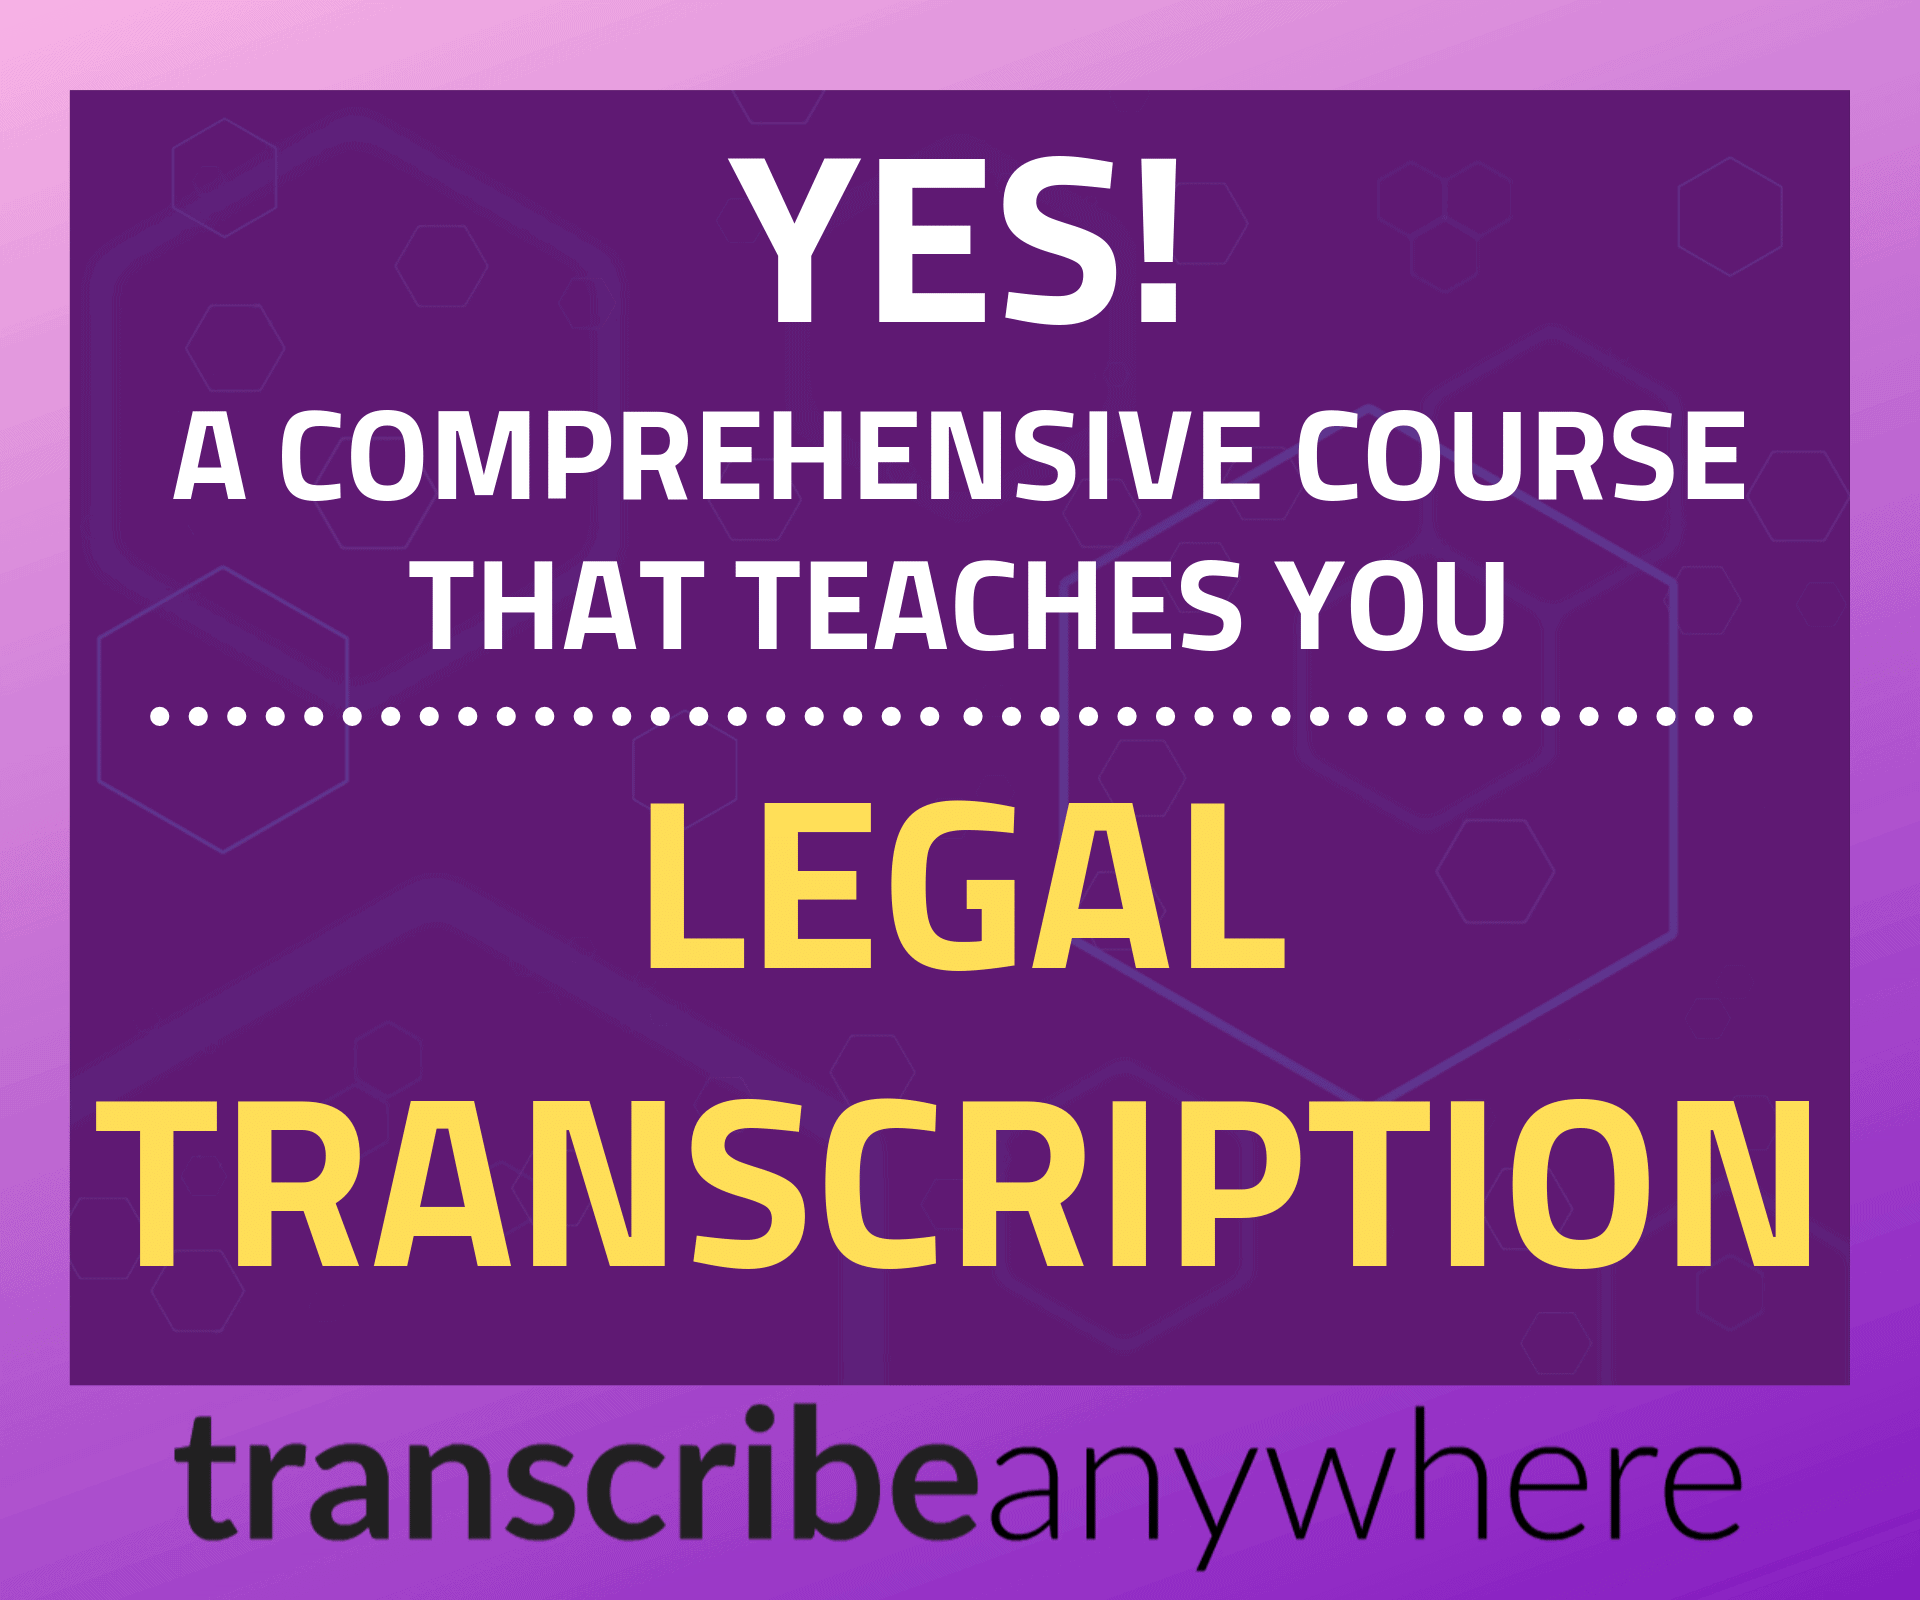 A comprehensive course that teaches you Legal Transcription